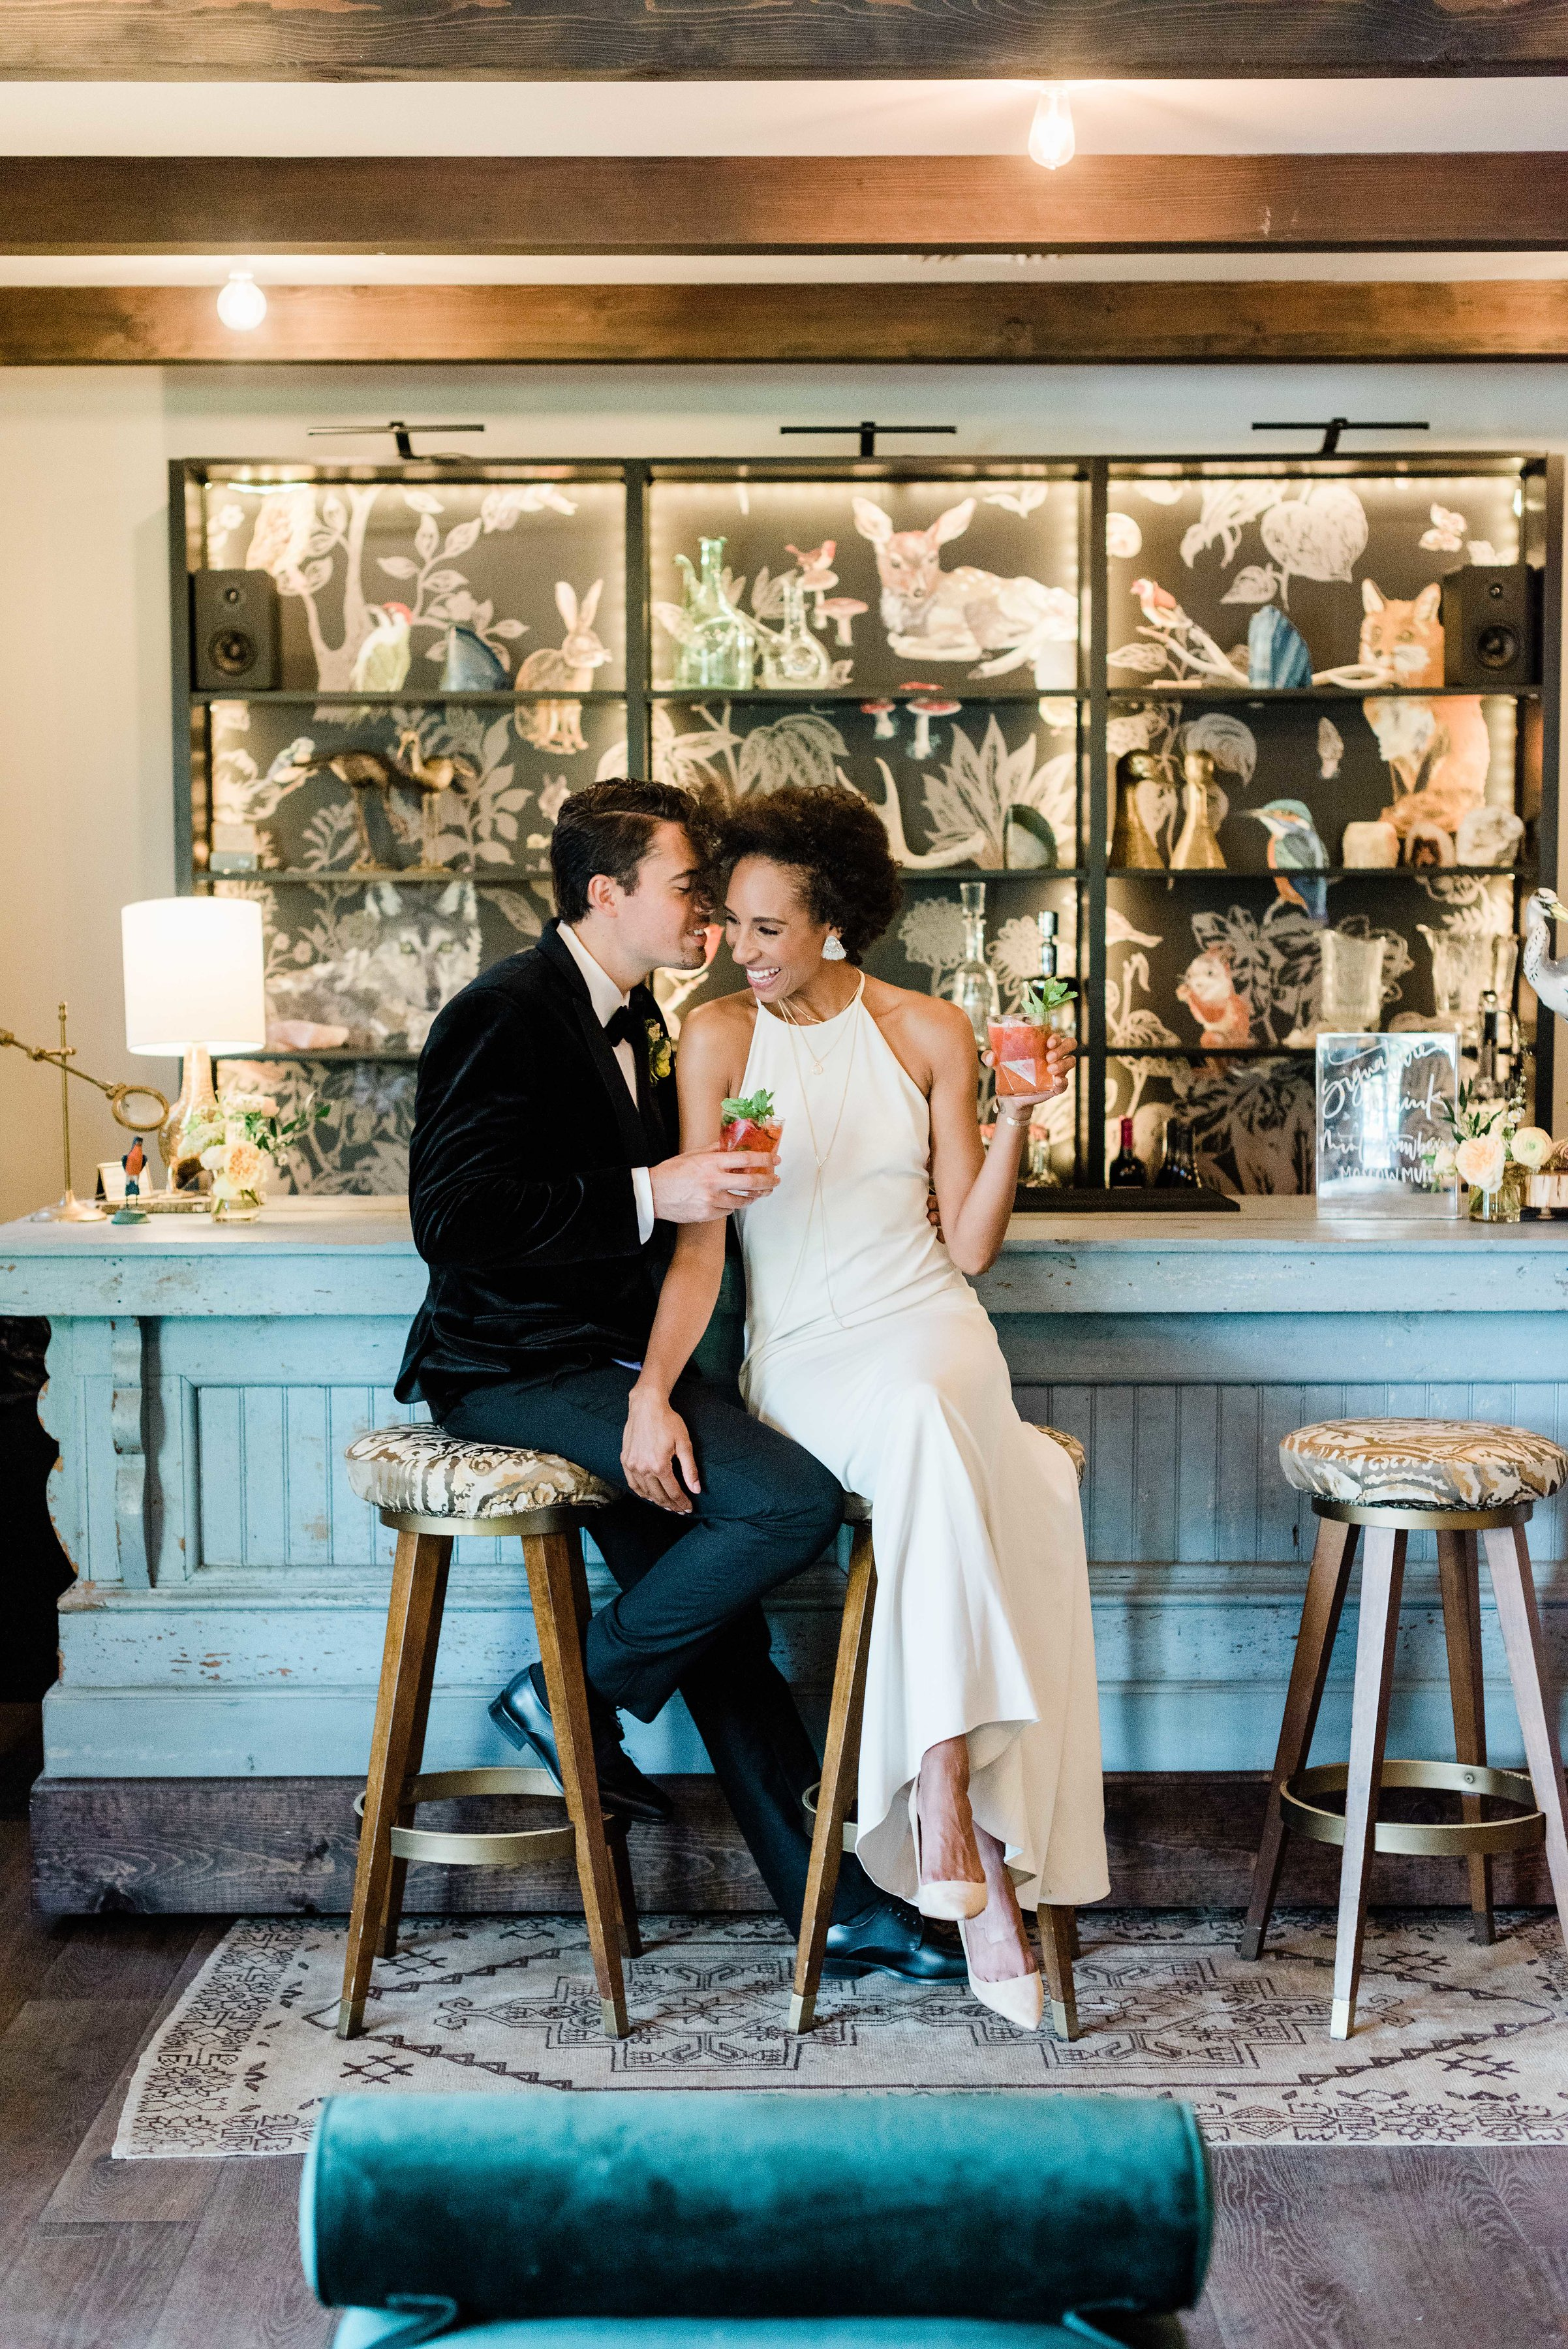 Wedding Couple in The Bar having Cocktails